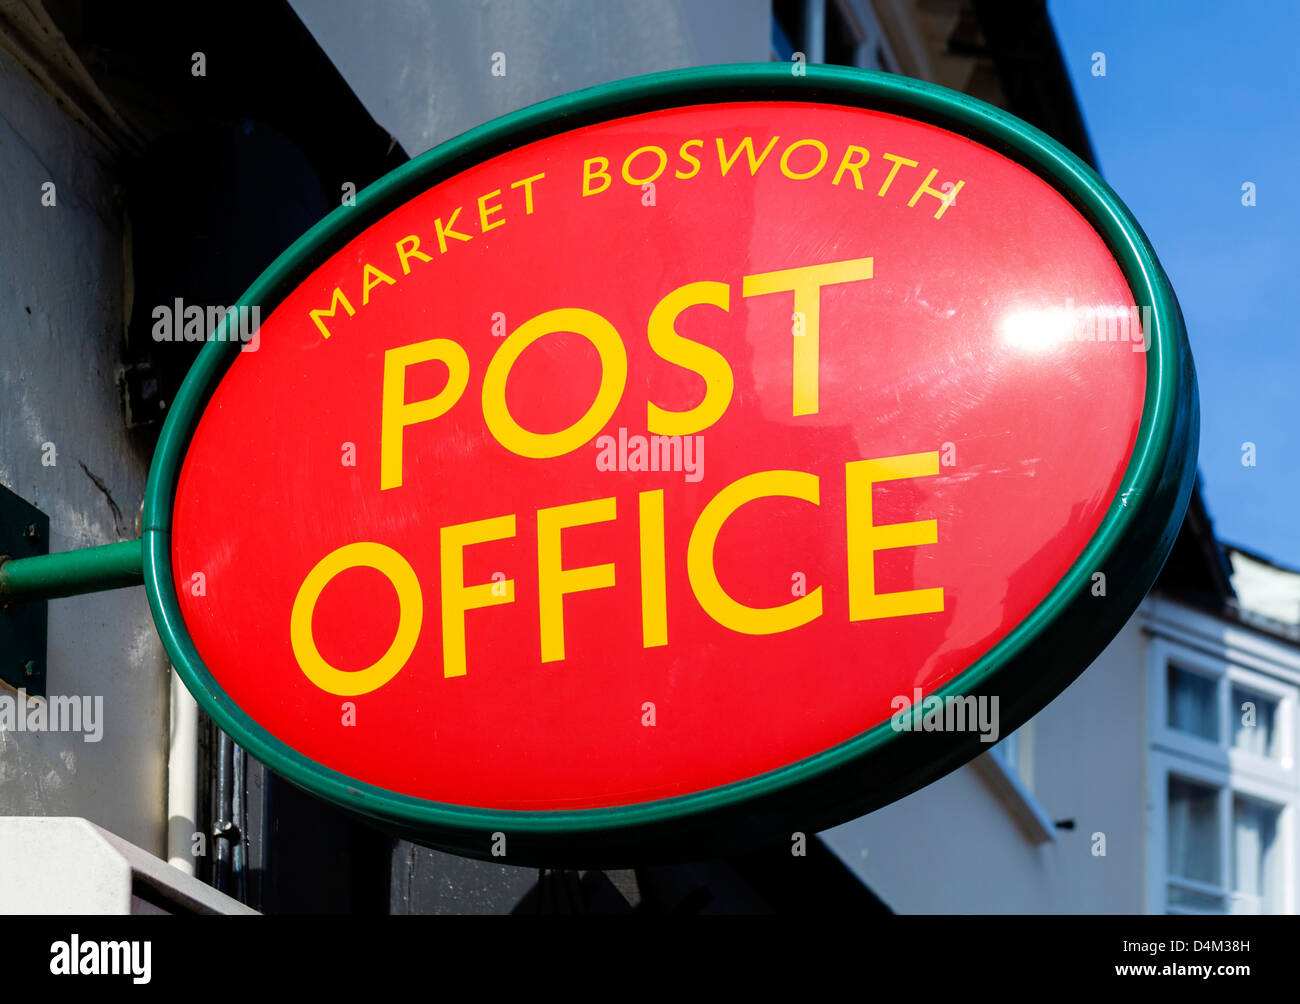 Local Post Office sign in the town centre, Market Bosworth, Leicestershire, East Midlands, UK - Stock Image